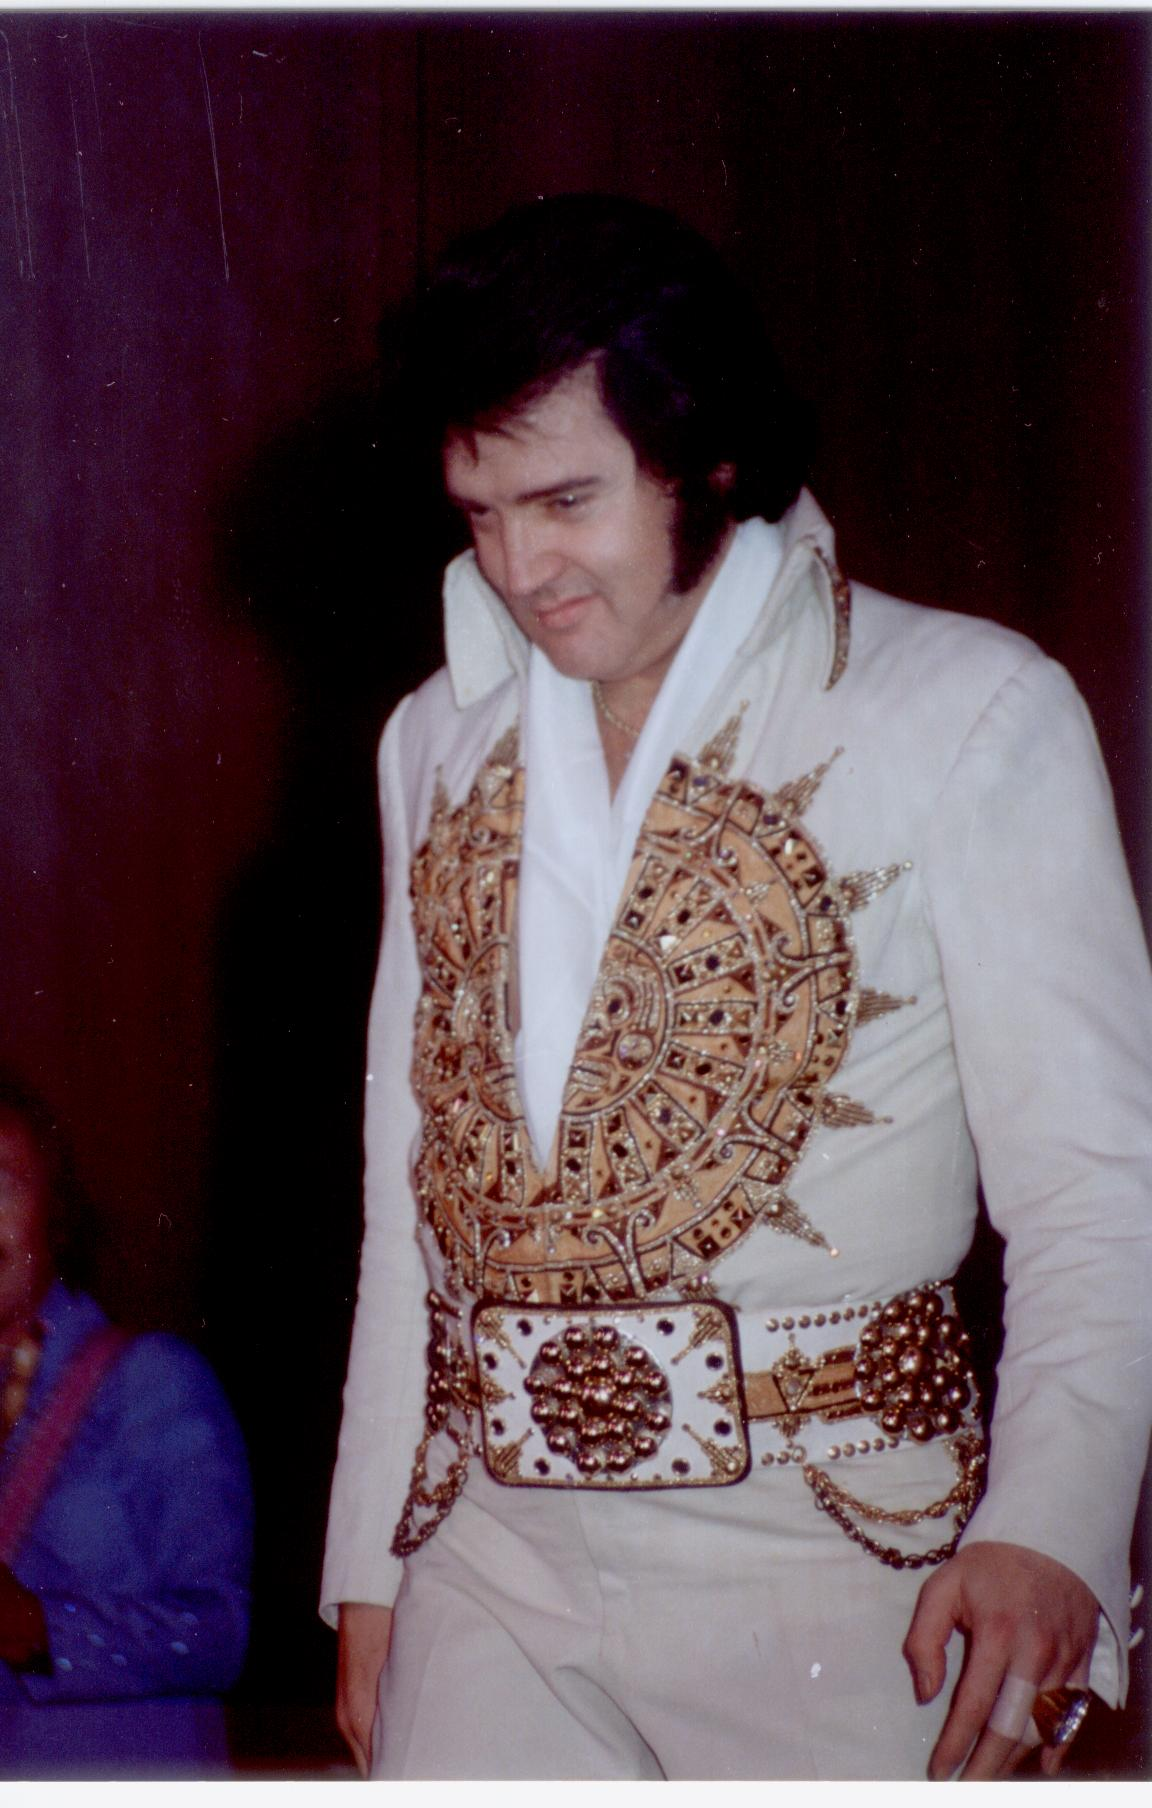 https://i2.wp.com/www.elvisconcerts.com/pictures/s77052904.jpg